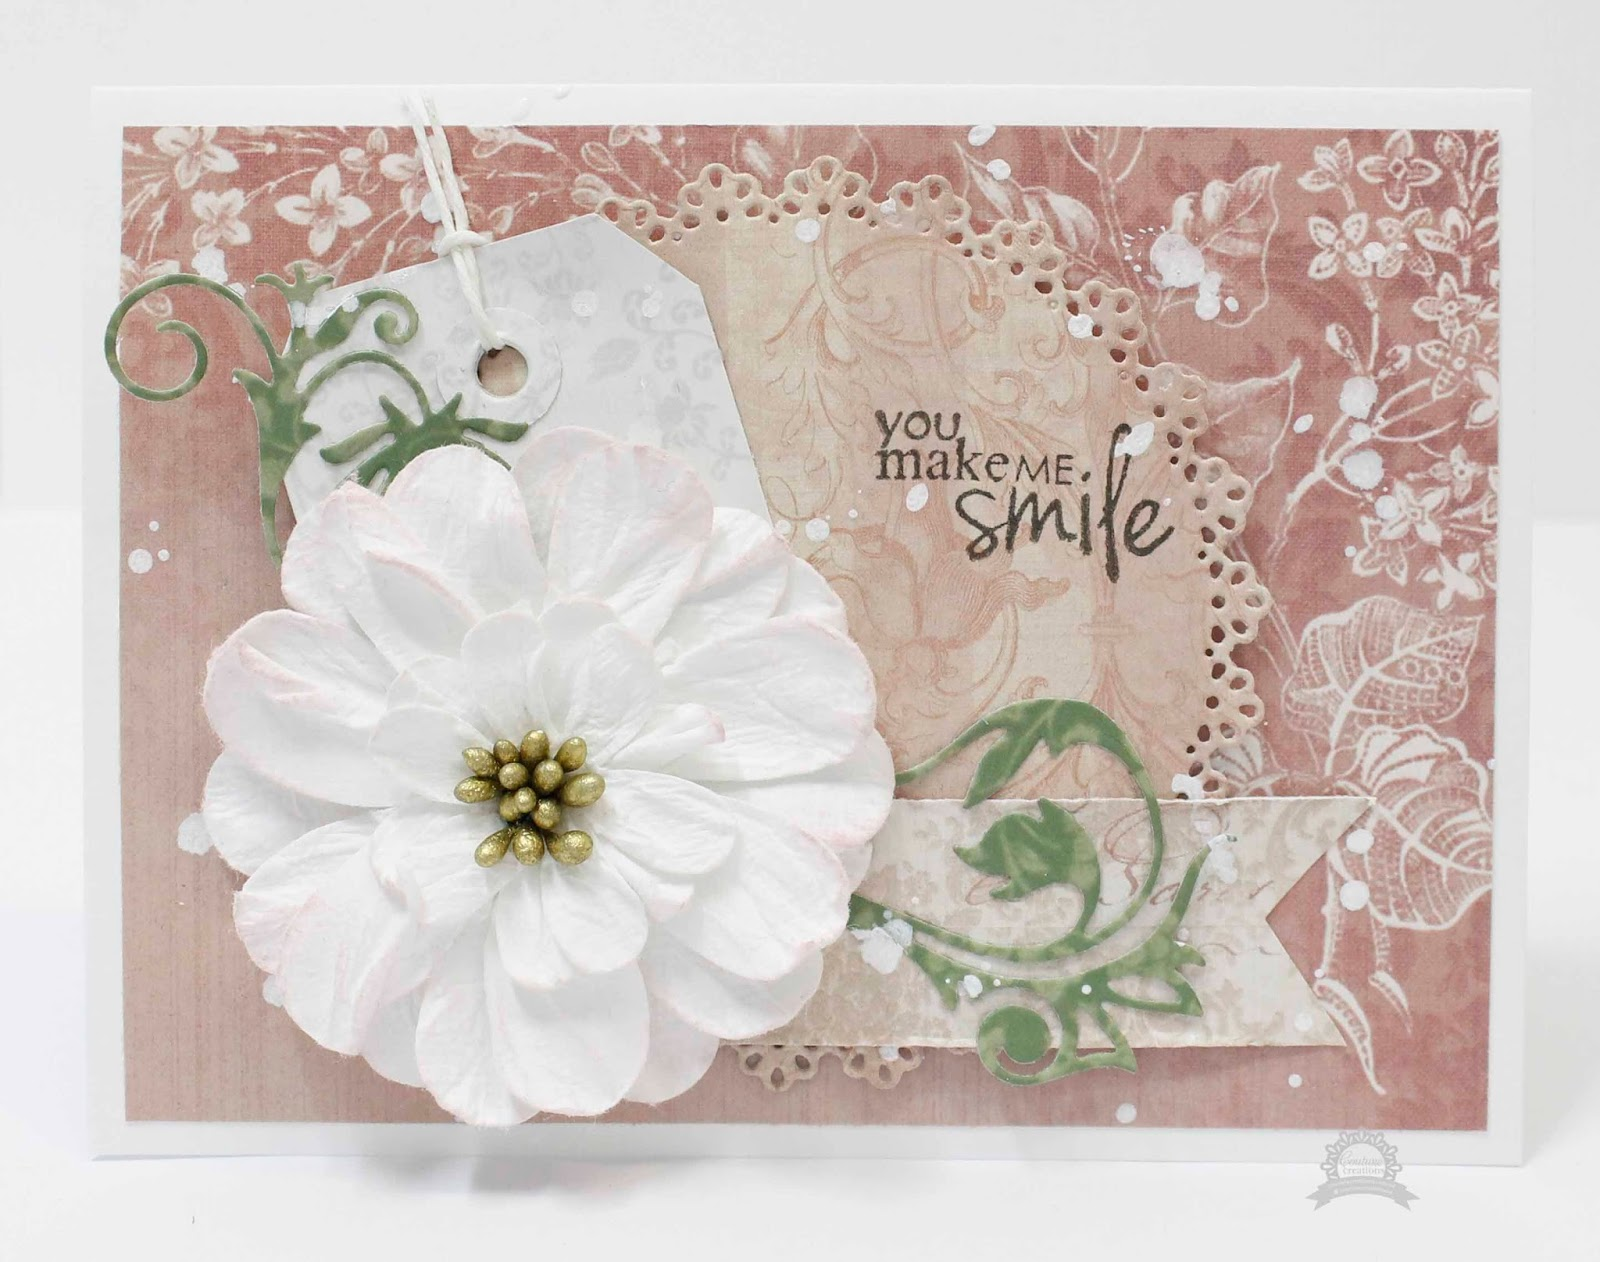 Rose Garden Creations: You Make Me Smile By Anita Bownds